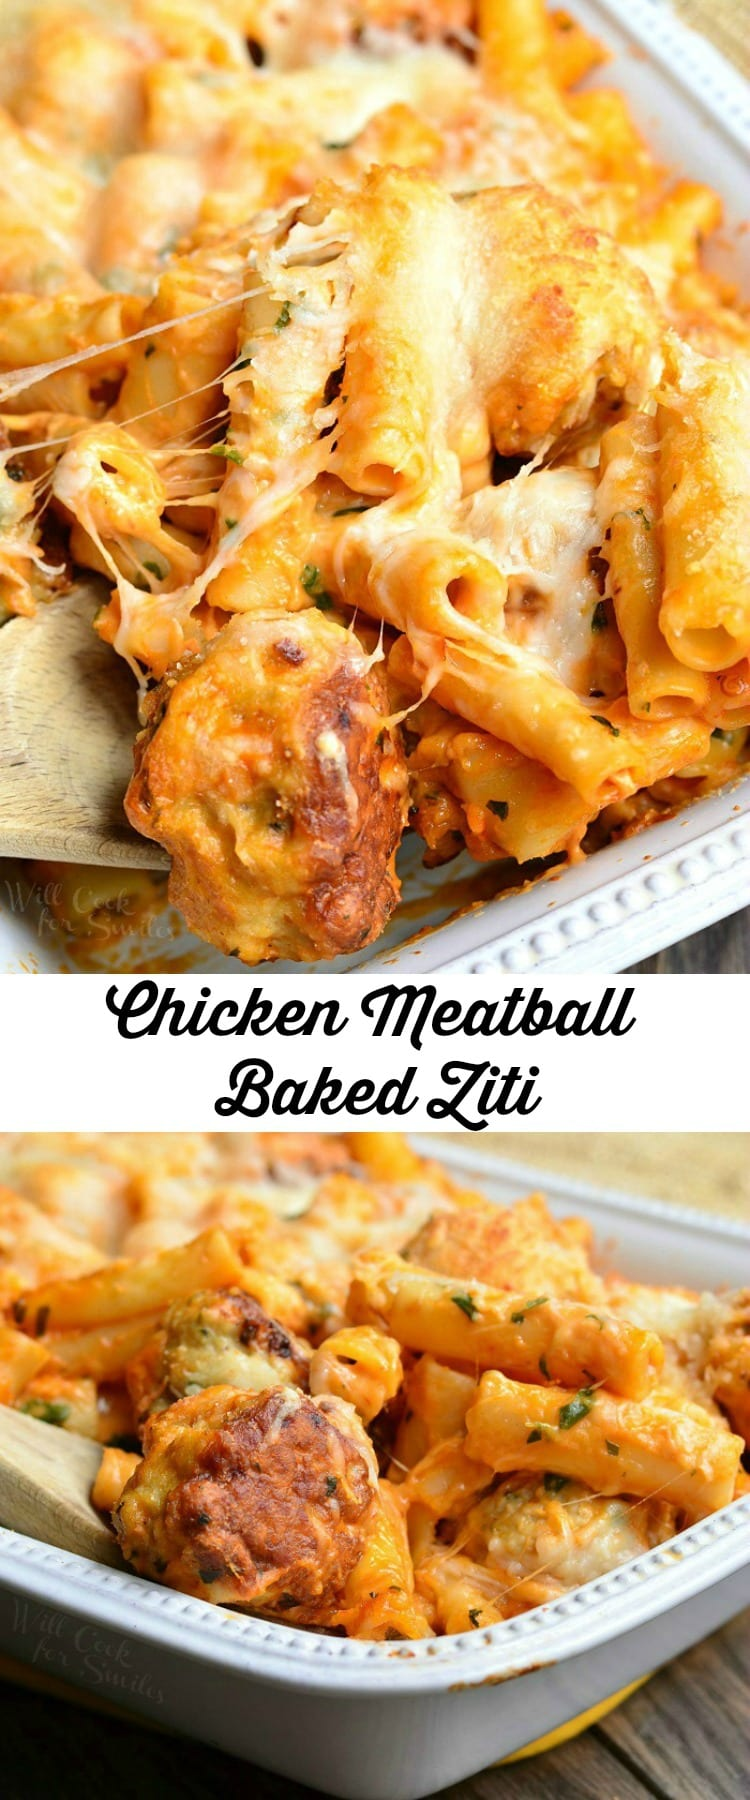 Chicken Meatball Baked Ziti | from willcookforsmiles.ocm #dinner #comfortfood #chicken